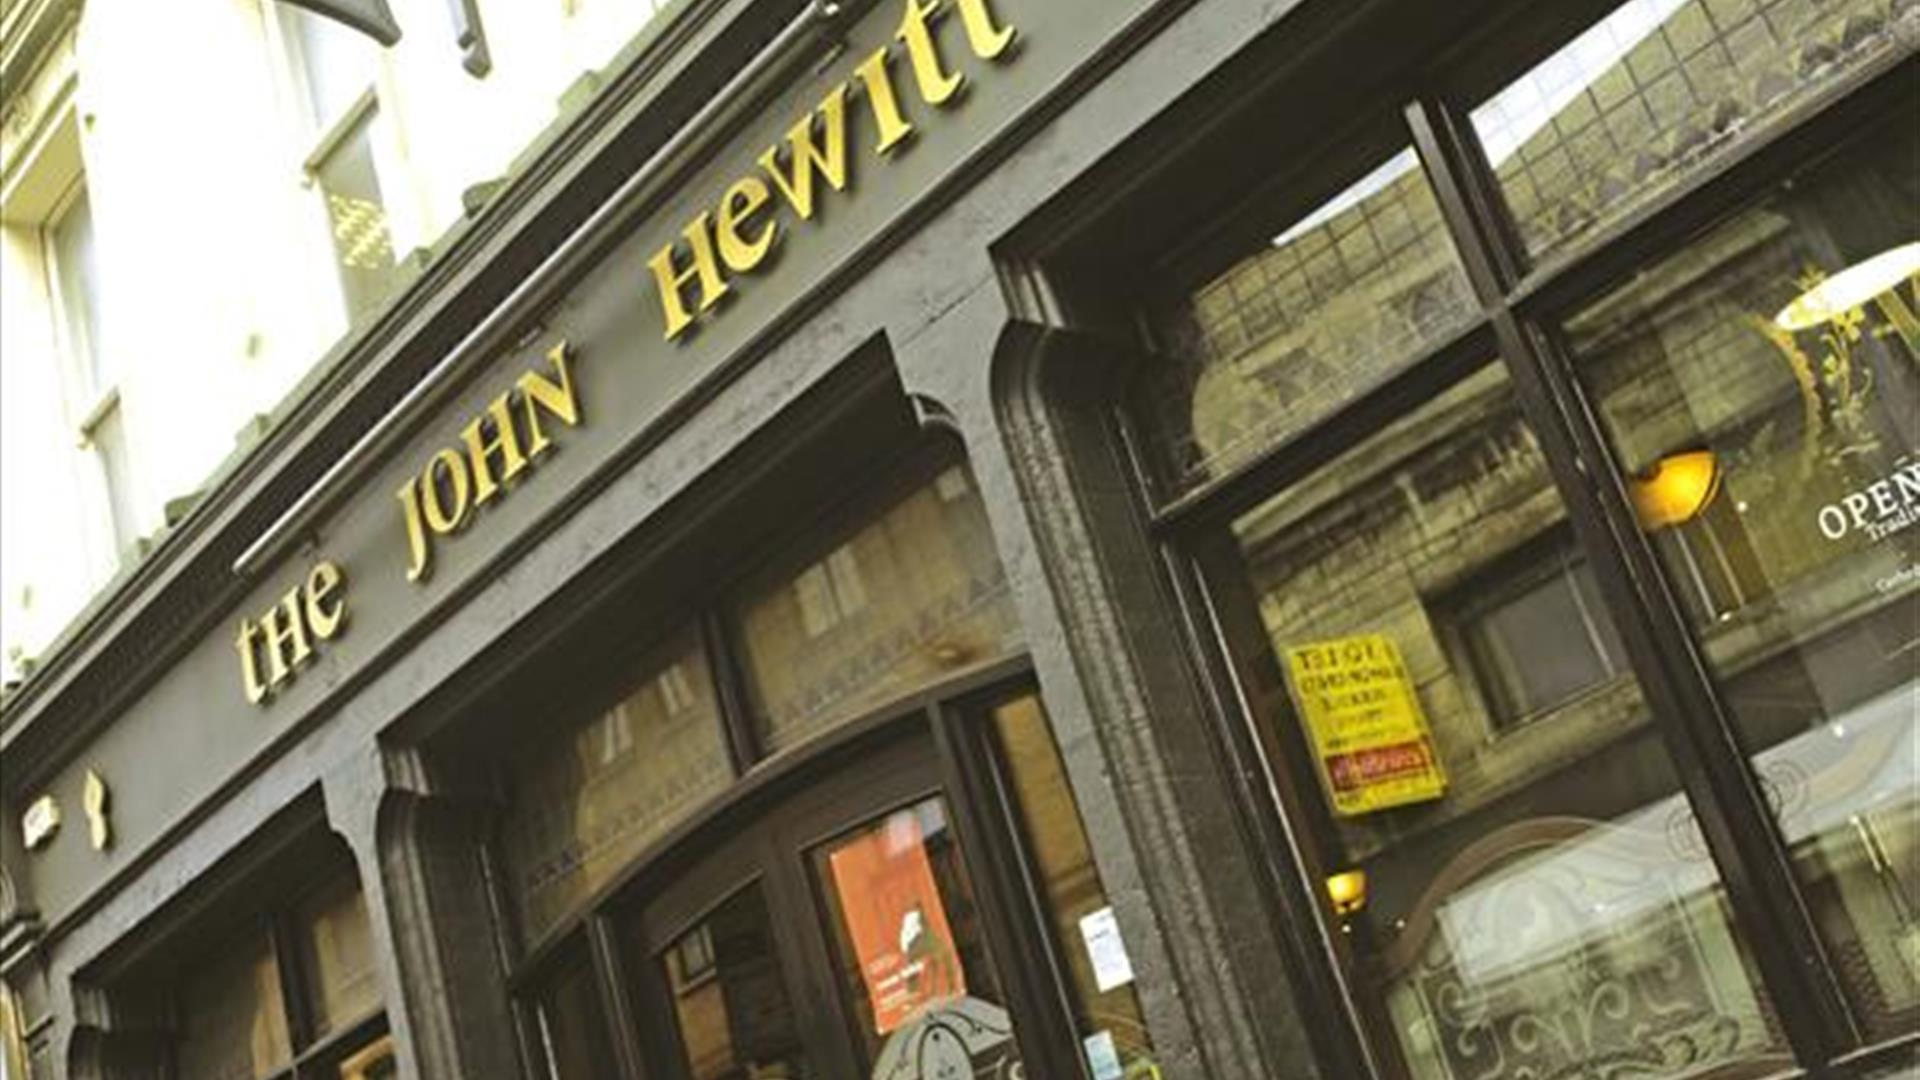 The John Hewitt Bar & Restaurant